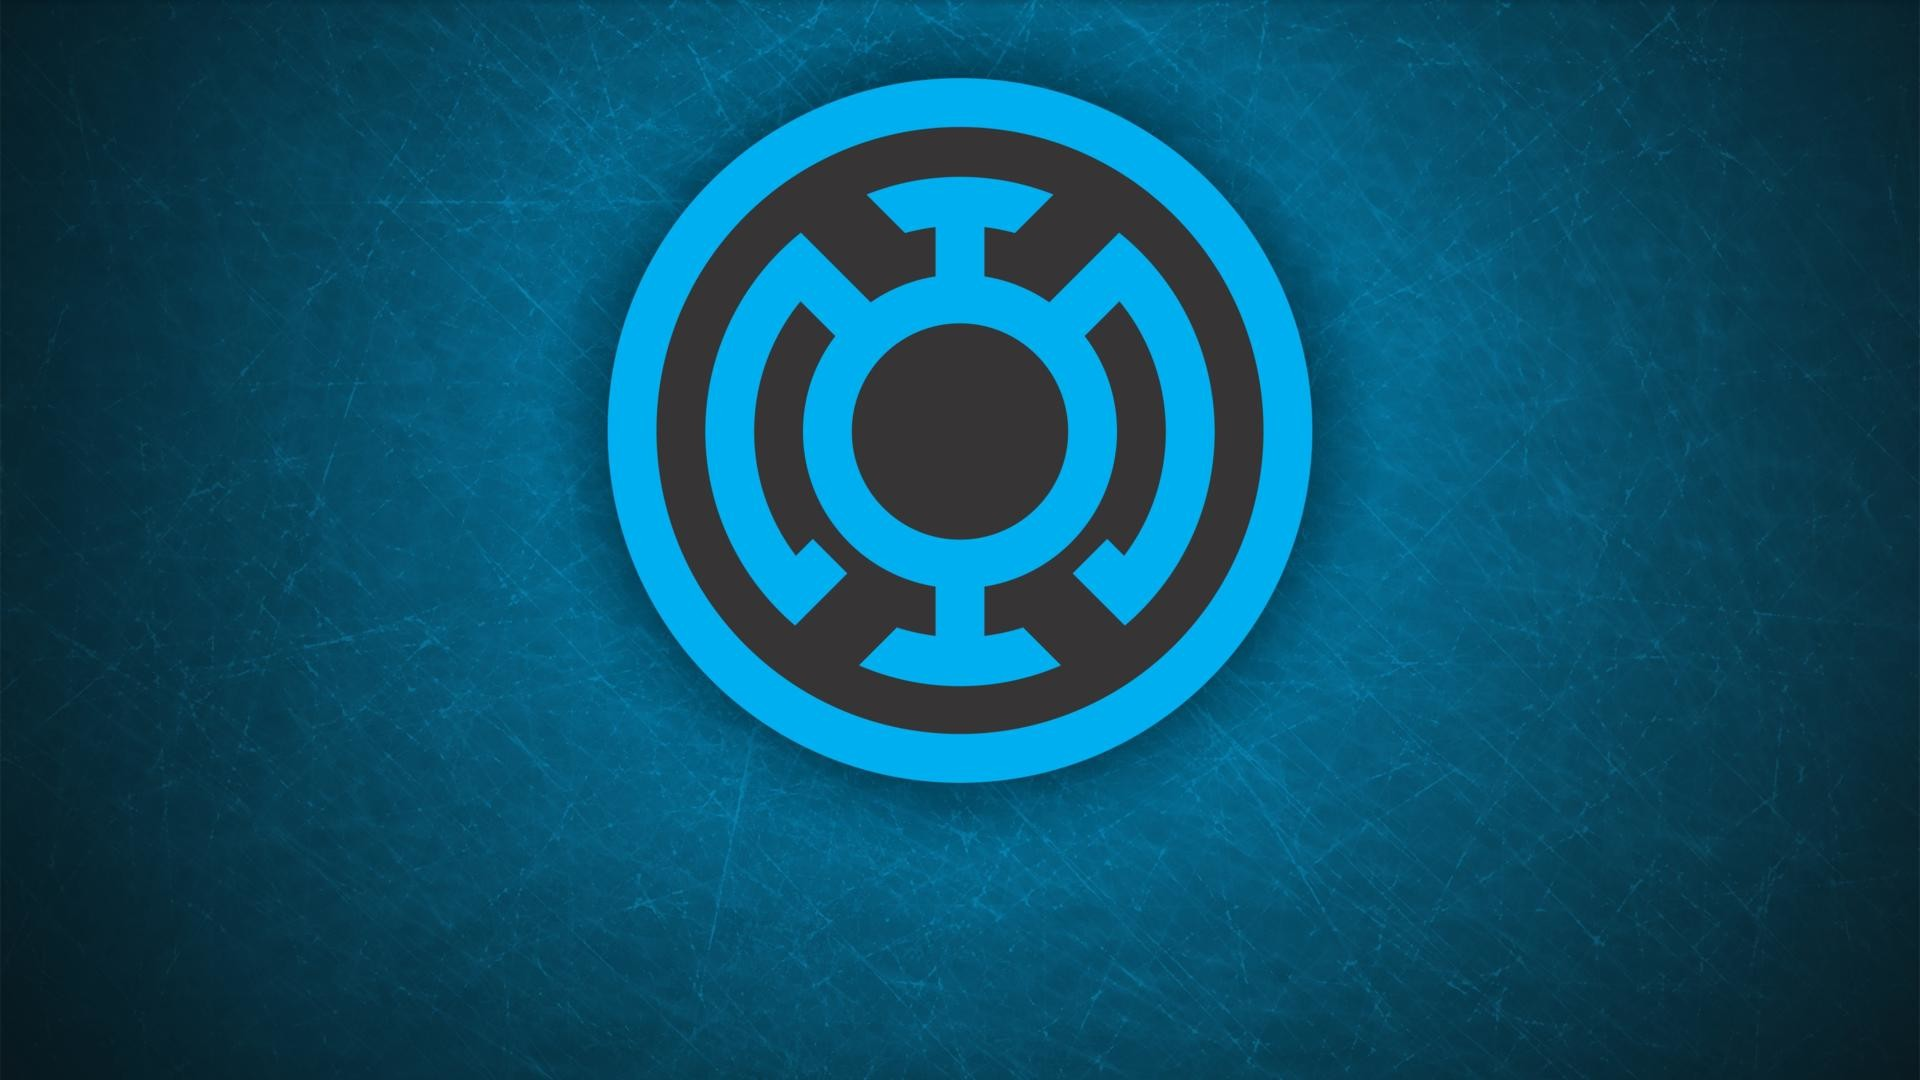 5 Blue Lantern Corps Wallpapers   Blue Lantern Corps Backgrounds